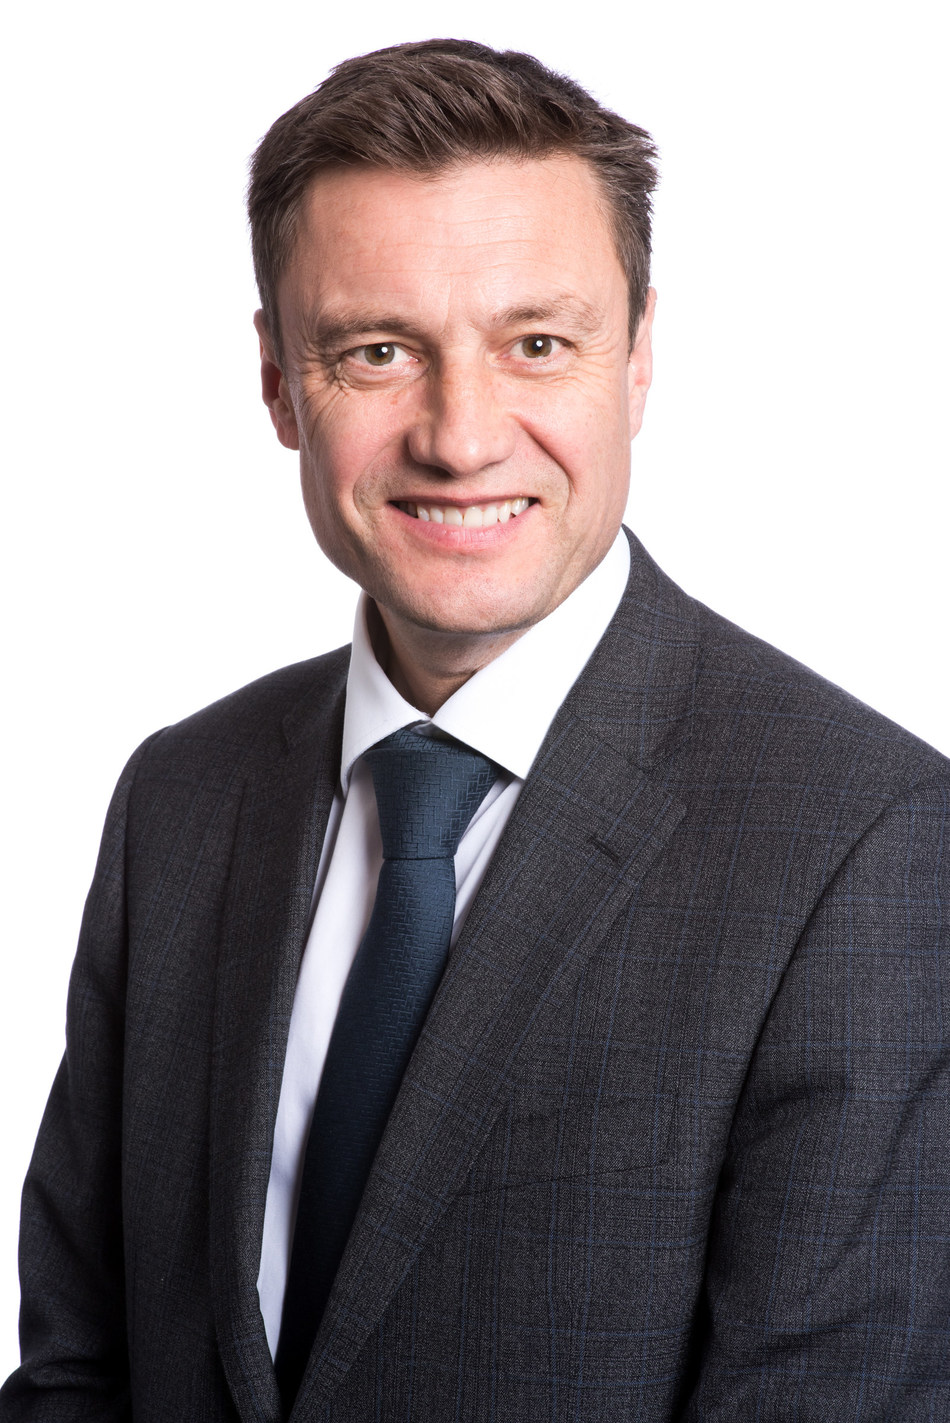 Eversheds Managing Partner and CEO-Elect, Lee Ranson